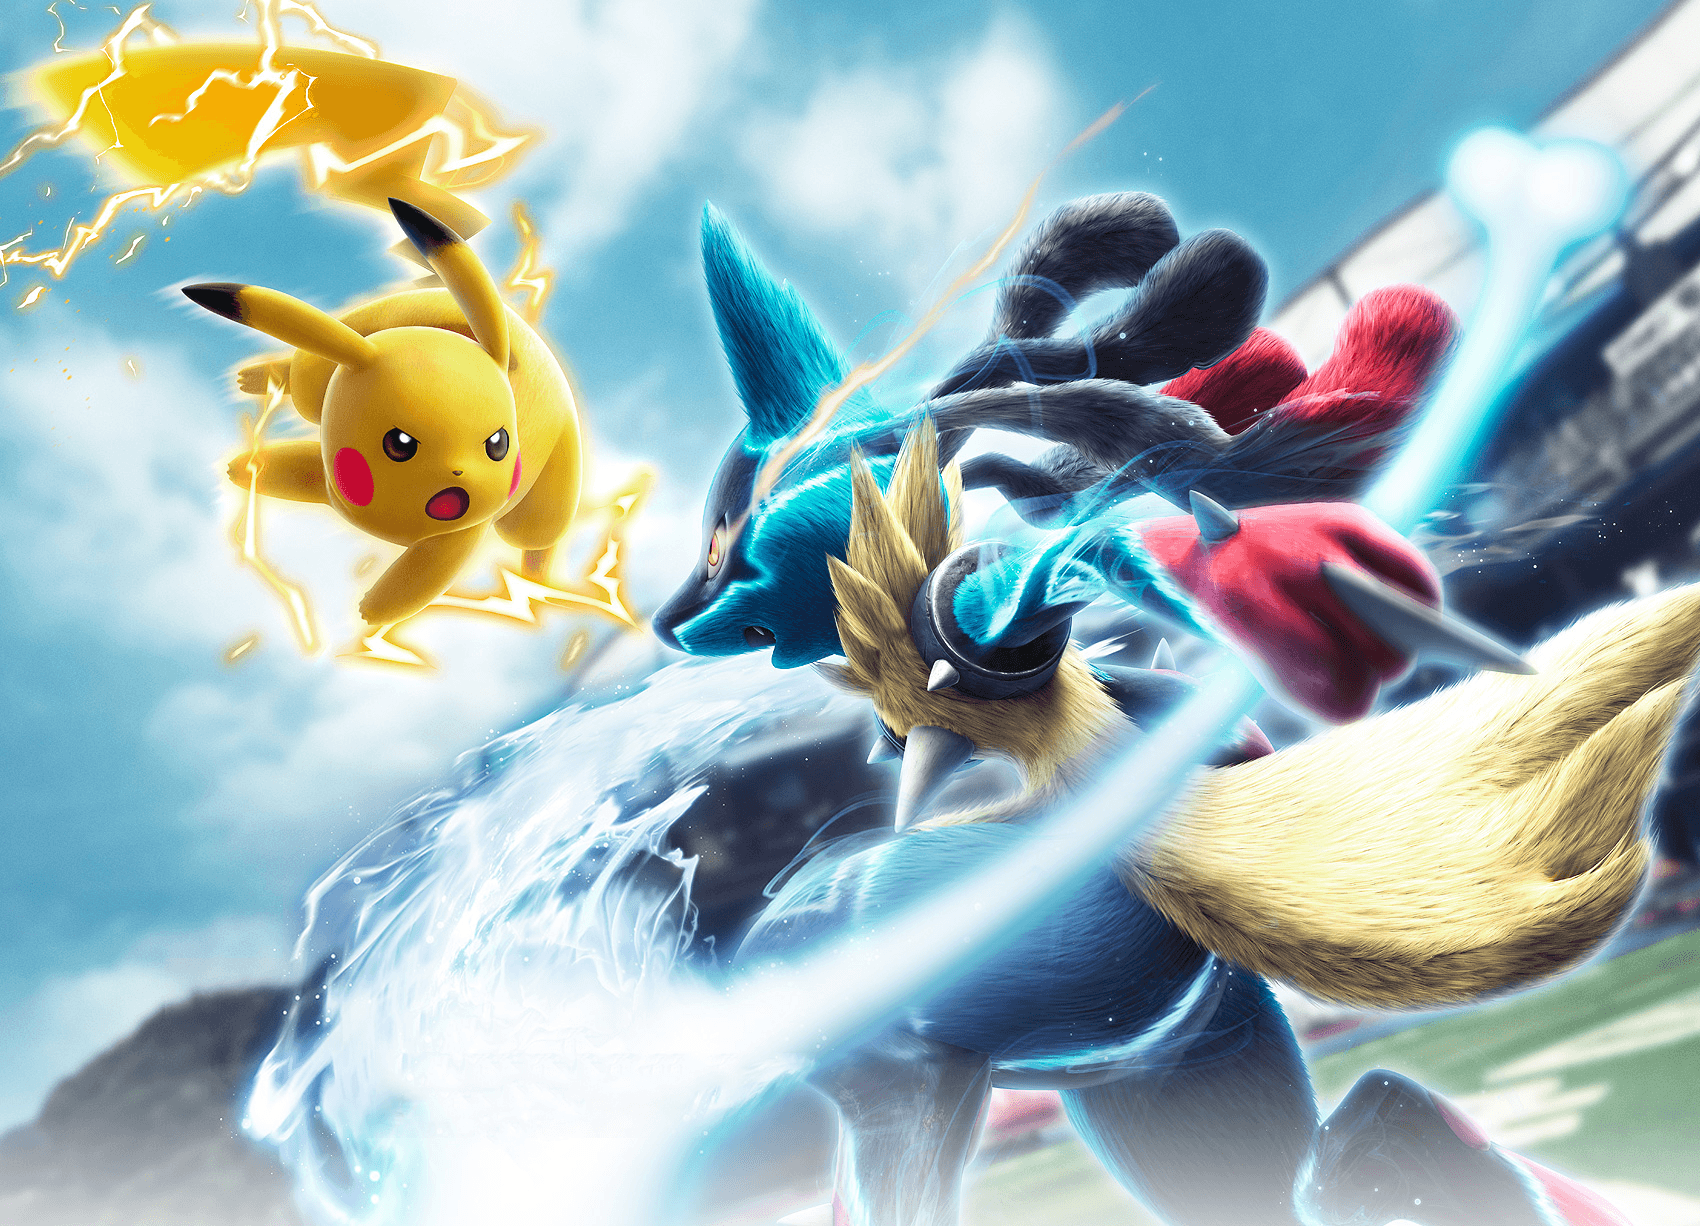 Lucario And Pikachu Wallpapers Top Free Lucario And Pikachu